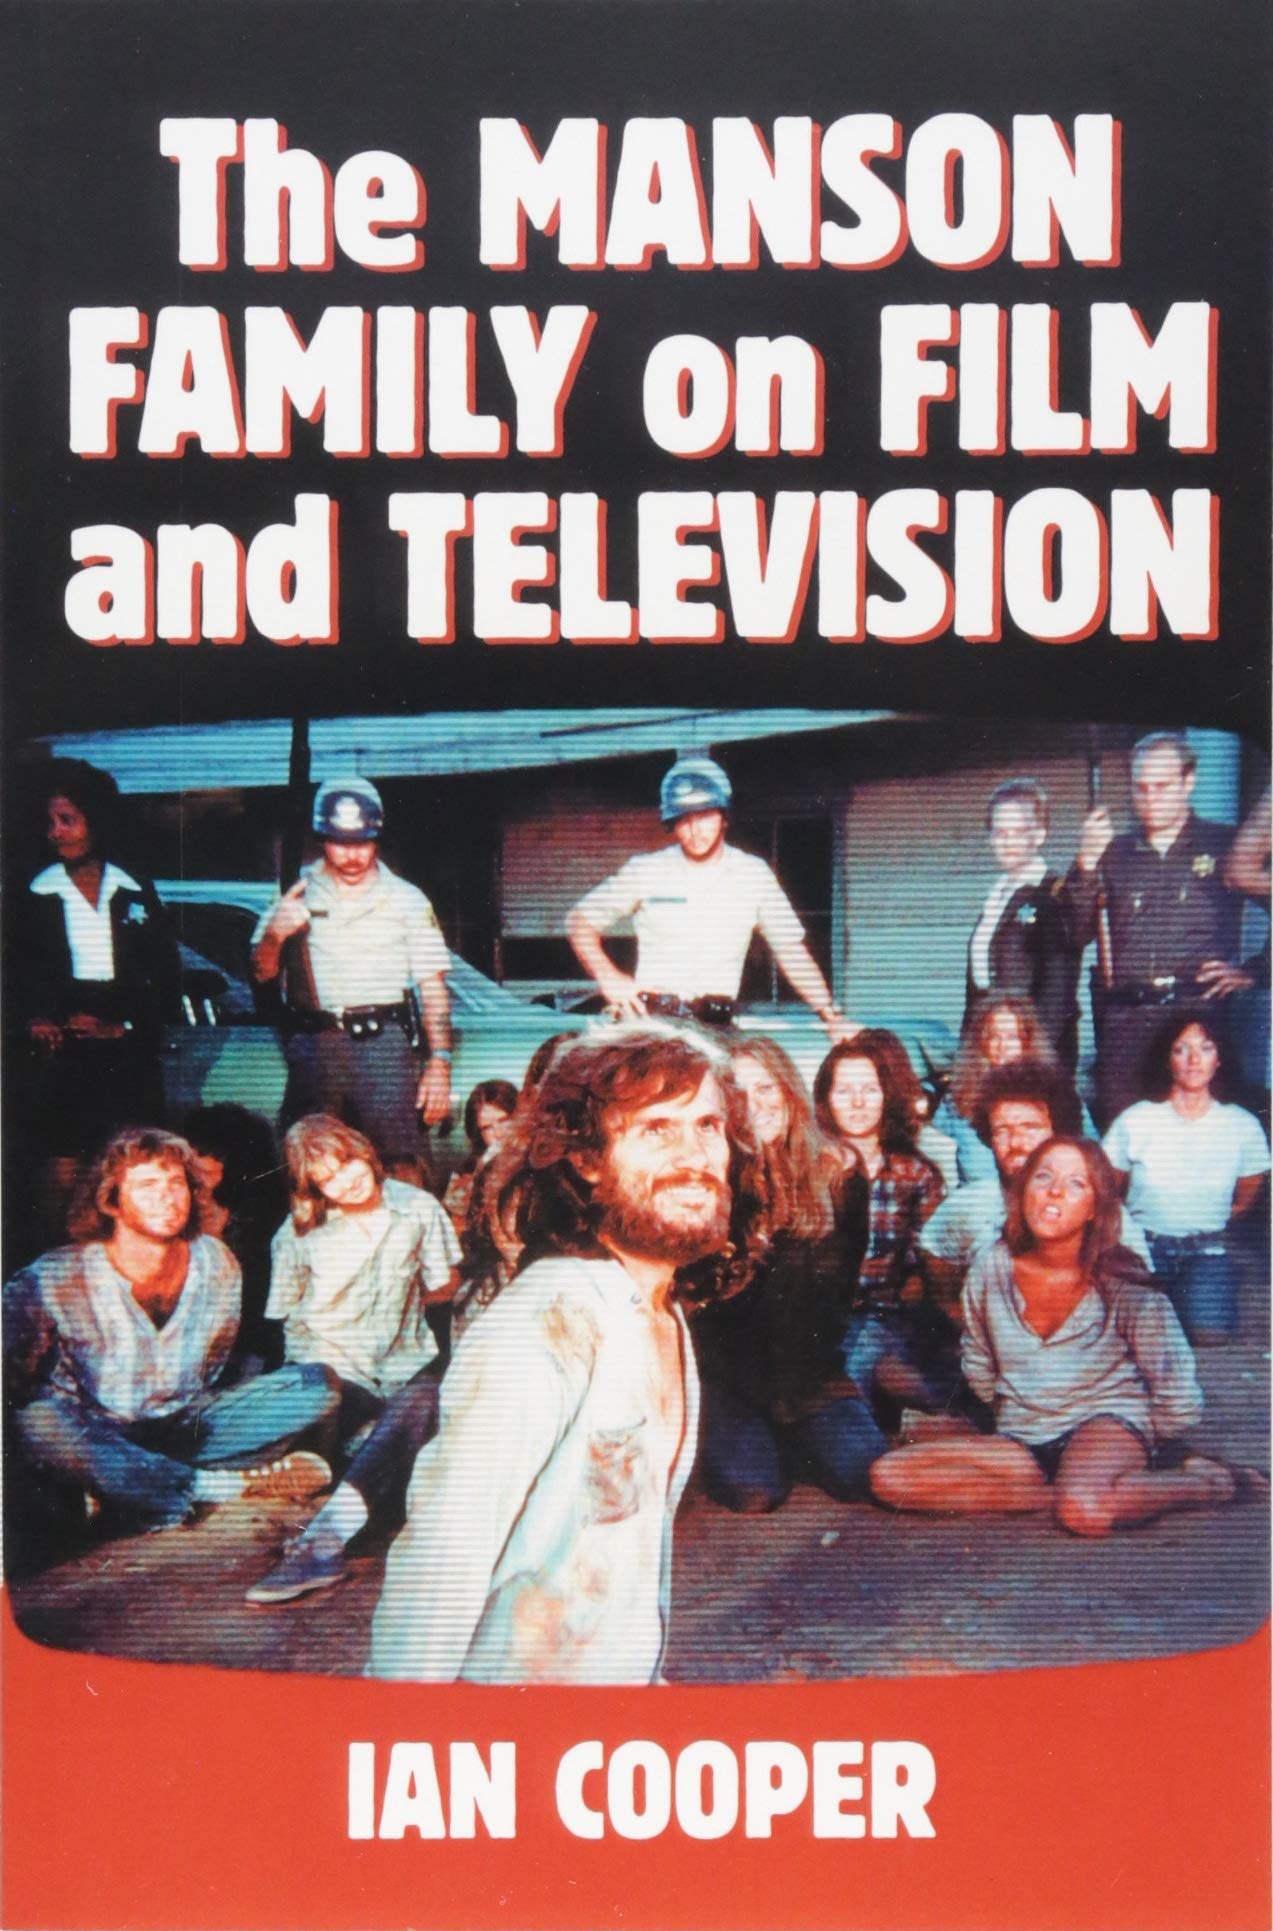 The Manson Family on Film and Television: Ian Cooper